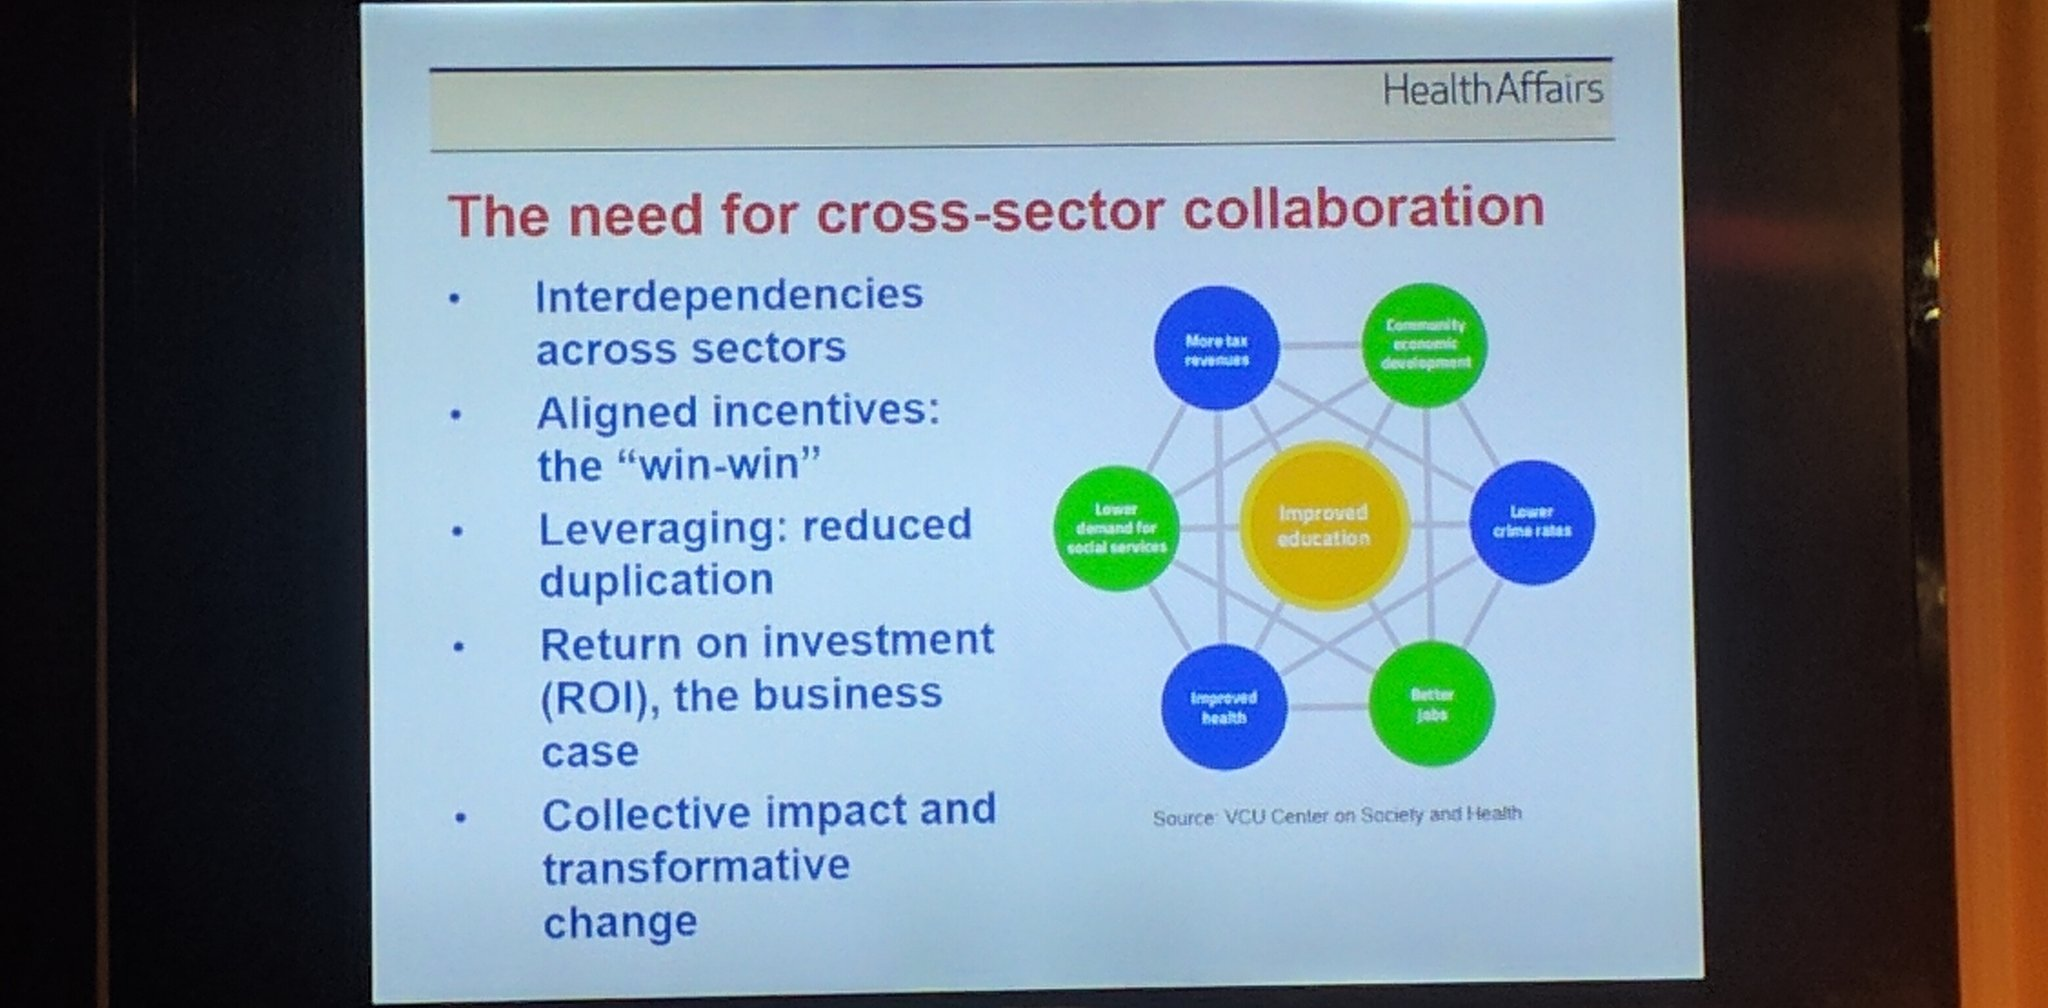 Collaboration is key for #healthequity - improved ROI, less duplication, bigger impact https://t.co/pzMgA3FaZ0